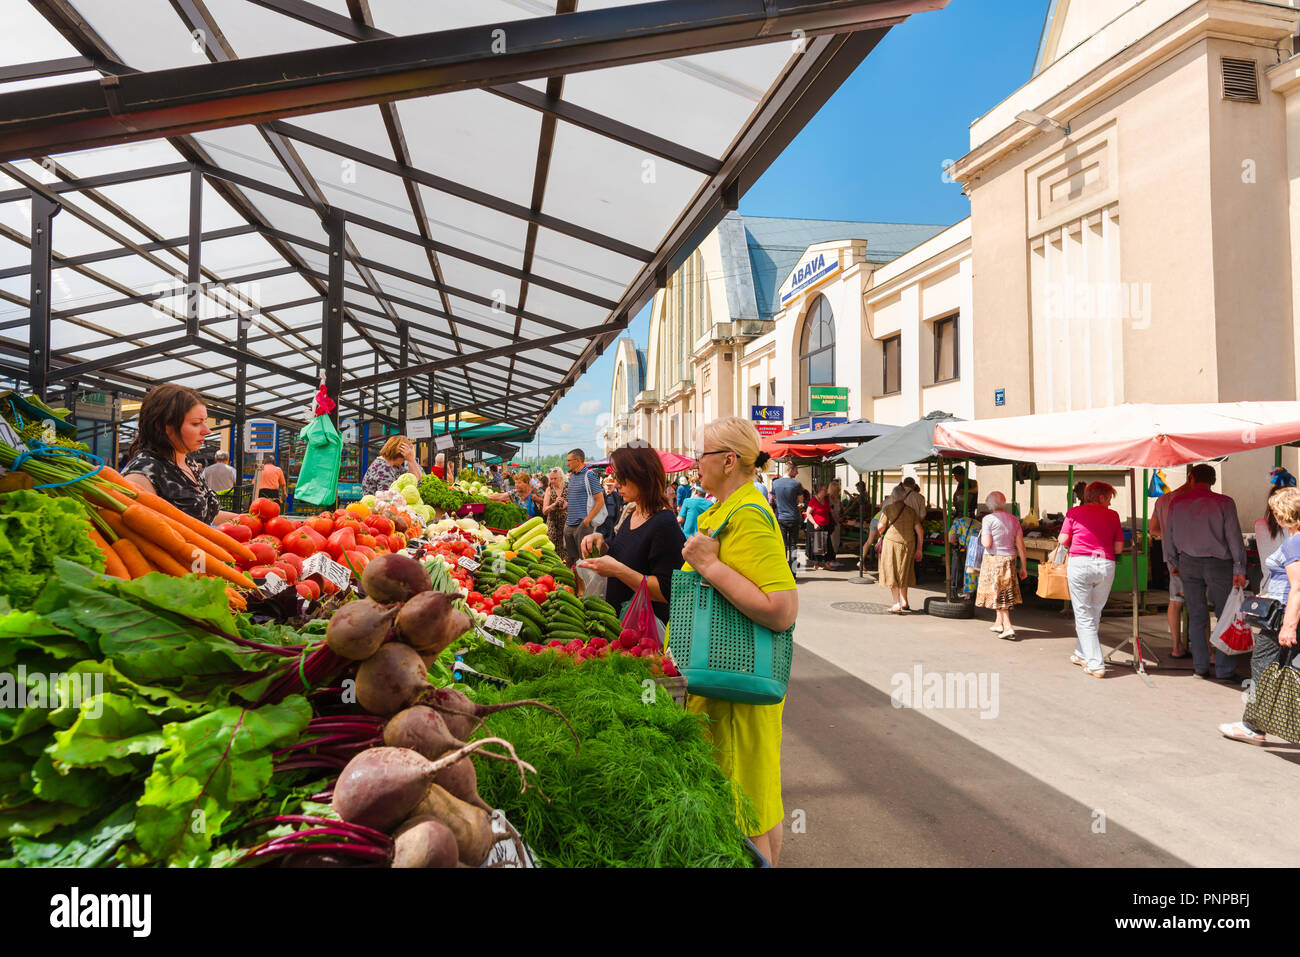 Riga Central Market, view of Latvian women buying vegetables at a stall outside the Riga Central Market building, Latvia. - Stock Image